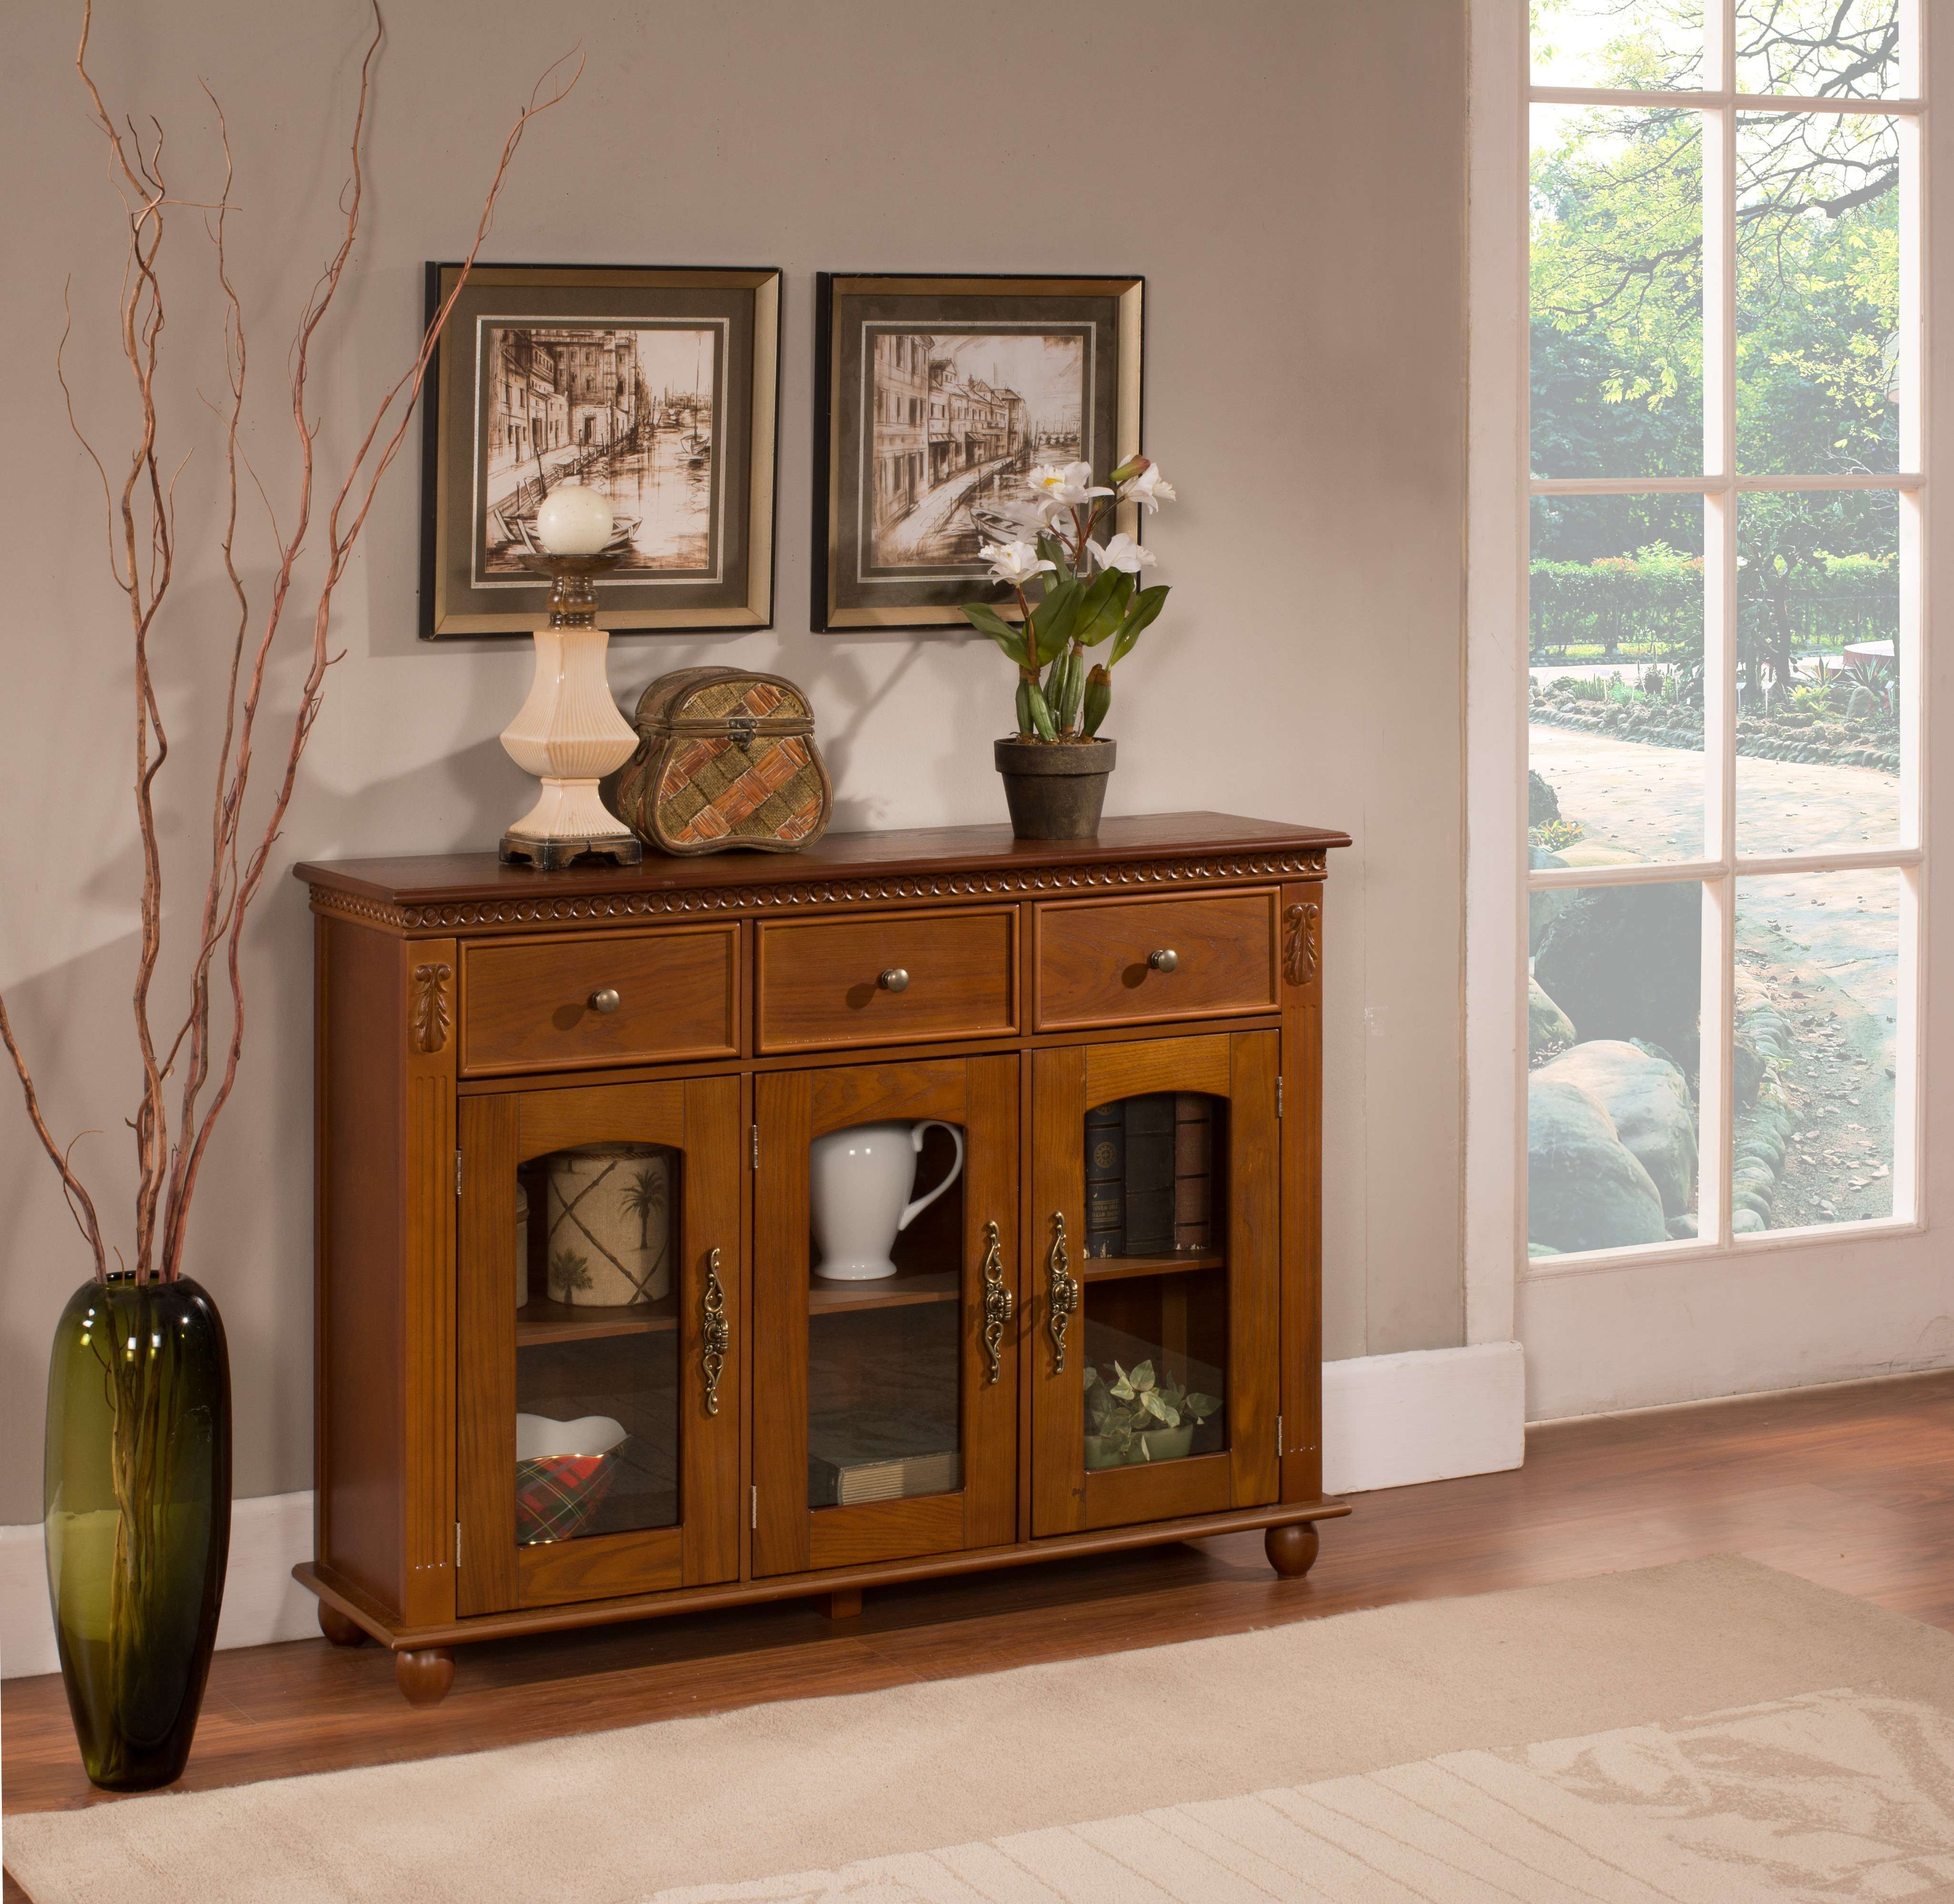 Tall Buffet Cabinet Black Sideboard Cabinet Sideboard With Hutch With Regard To Sideboards With Hutch (View 8 of 20)